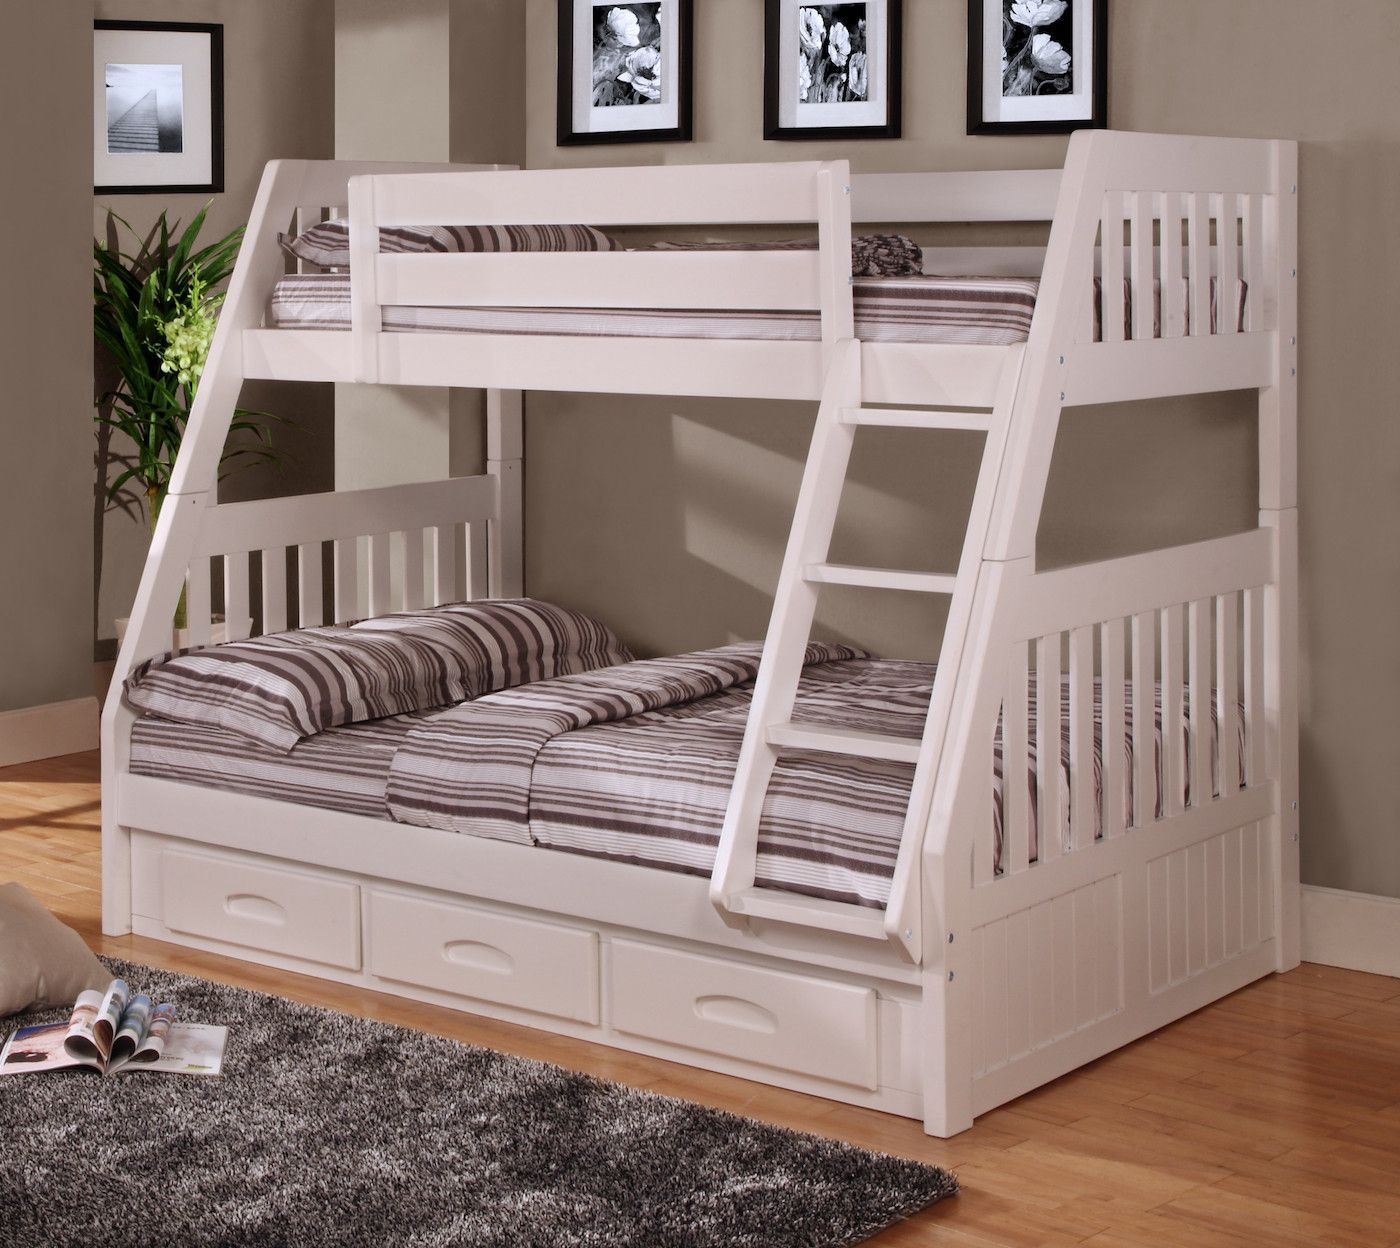 Loft bed with desk full size mattress  Julia White Twin over Full Bunk Bed  Underbed storage drawers Twin